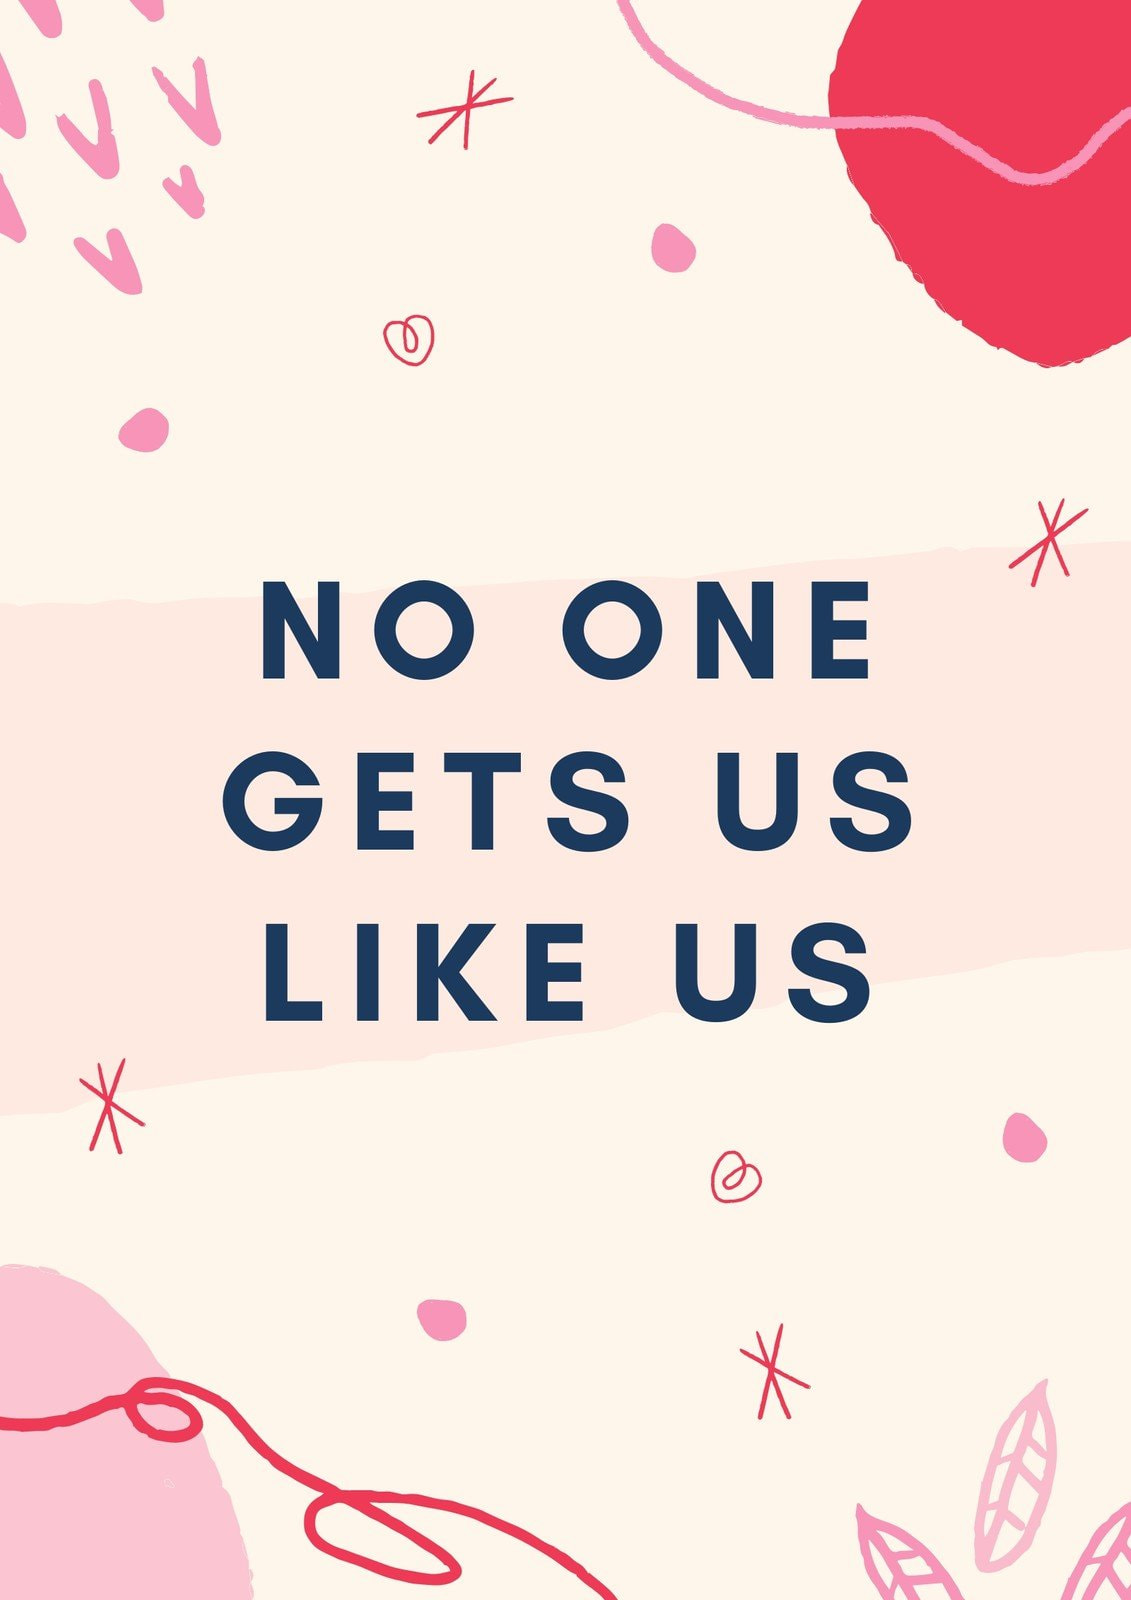 Pink and Red Illustrations Playful Friendship Quote Poster